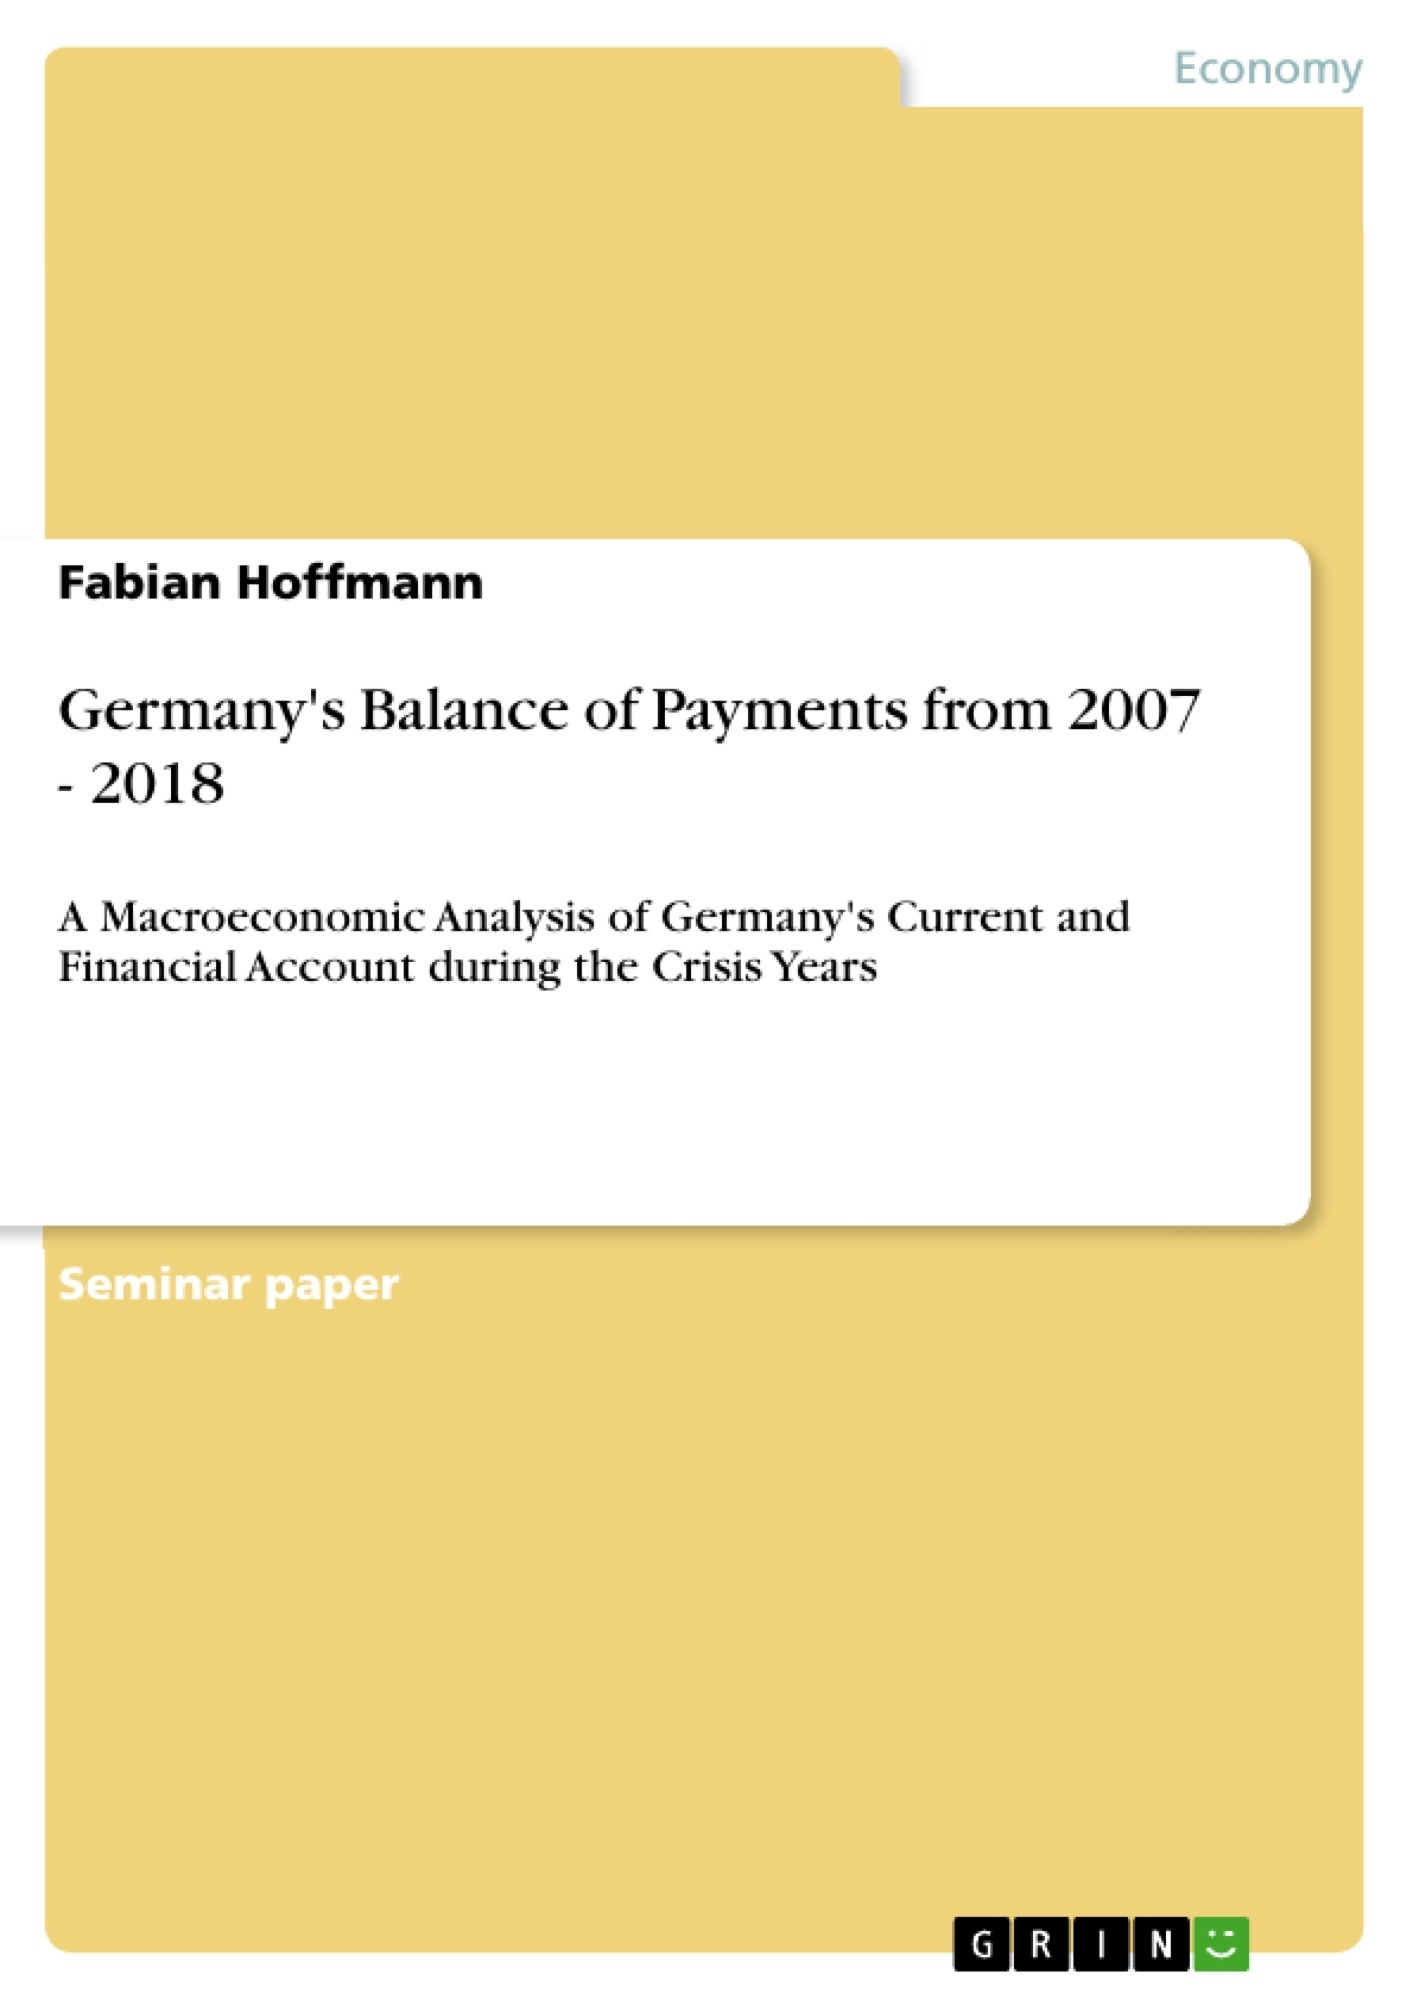 Title: Germany's Balance of Payments from 2007 - 2018